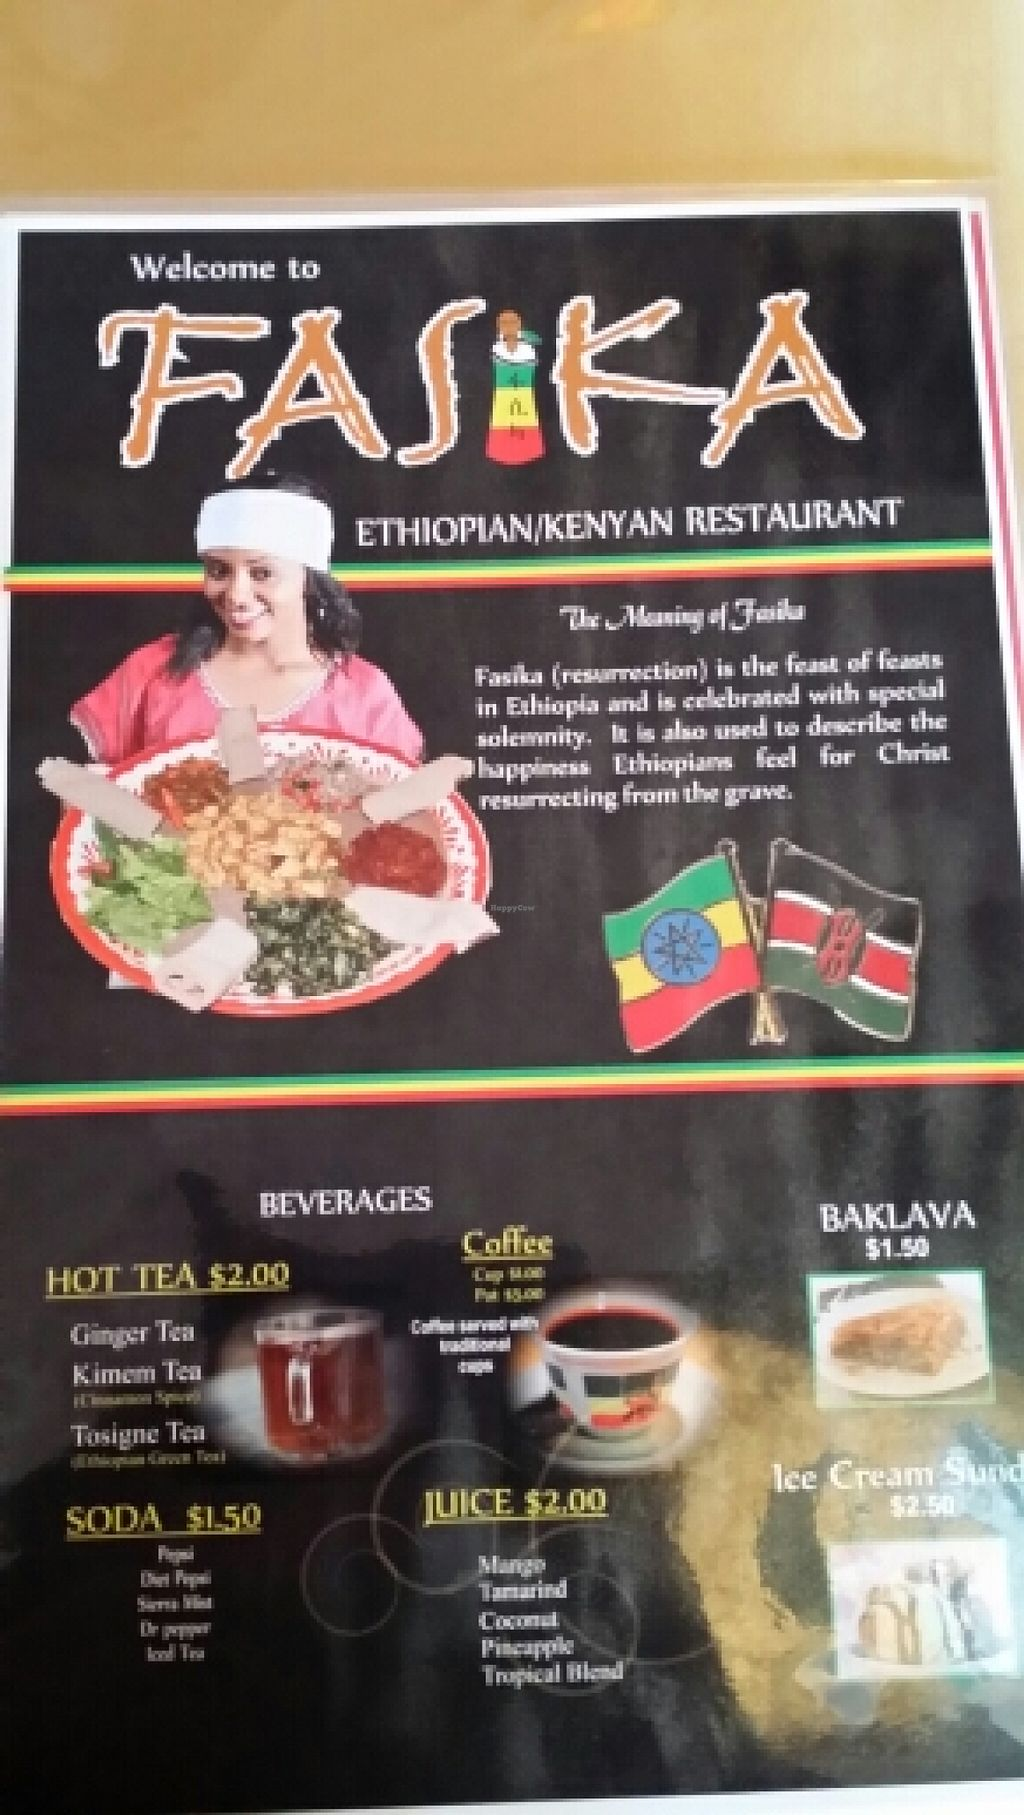 """Photo of Fasika Ethiopian Restaurant  by <a href=""""/members/profile/catbone"""">catbone</a> <br/>The meaning of their name, Fasika <br/> March 16, 2016  - <a href='/contact/abuse/image/54385/140185'>Report</a>"""